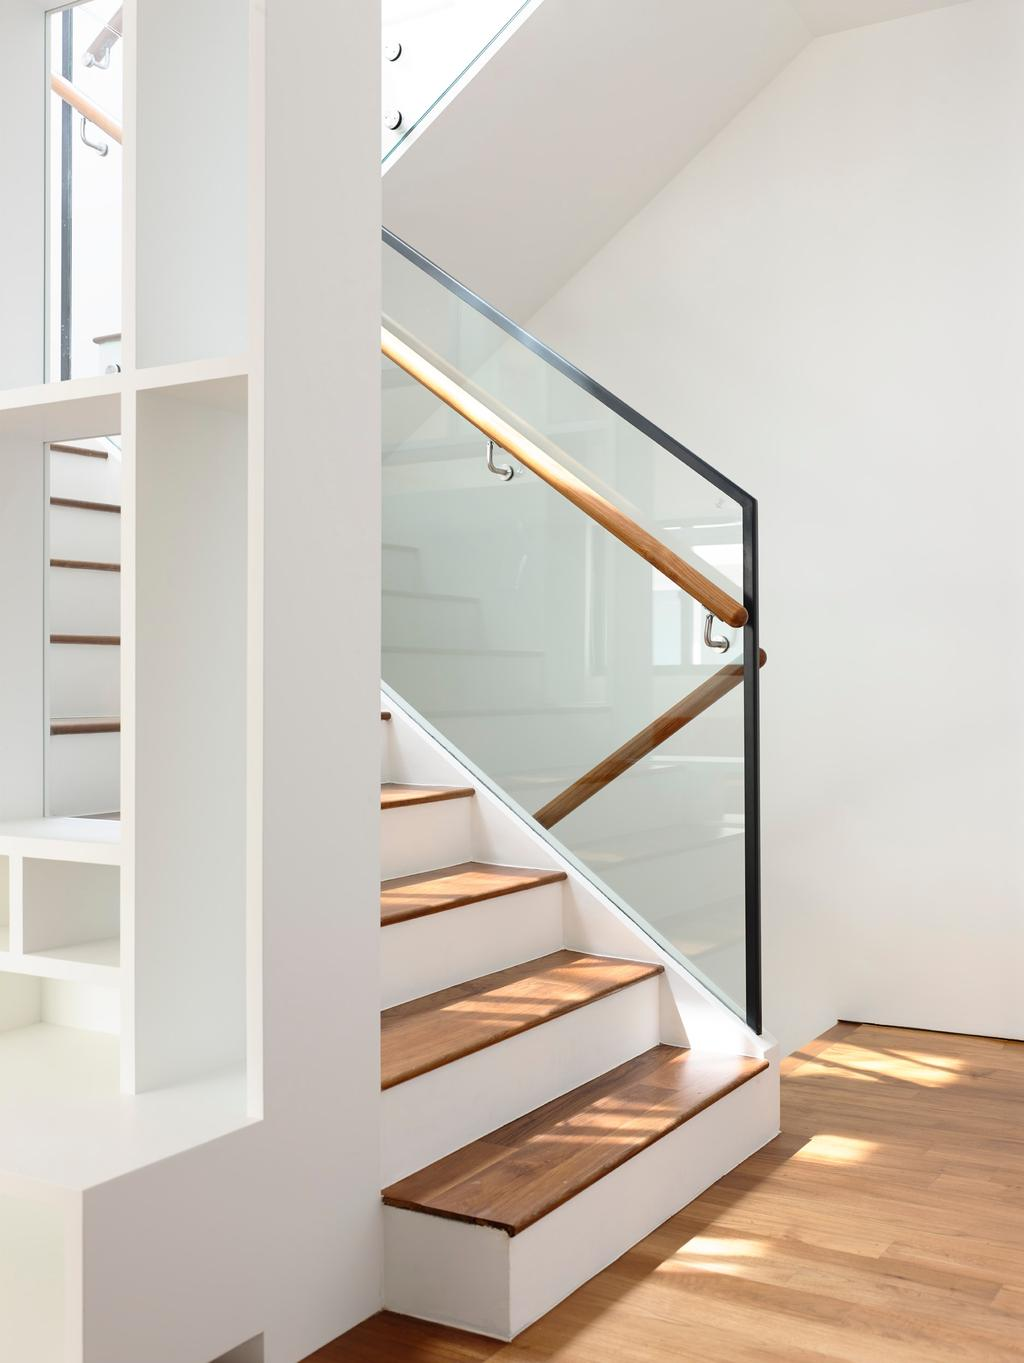 Contemporary, Landed, Bowmont Gardens, Architect, HYLA Architects, Banister, Handrail, Staircase, Shelf